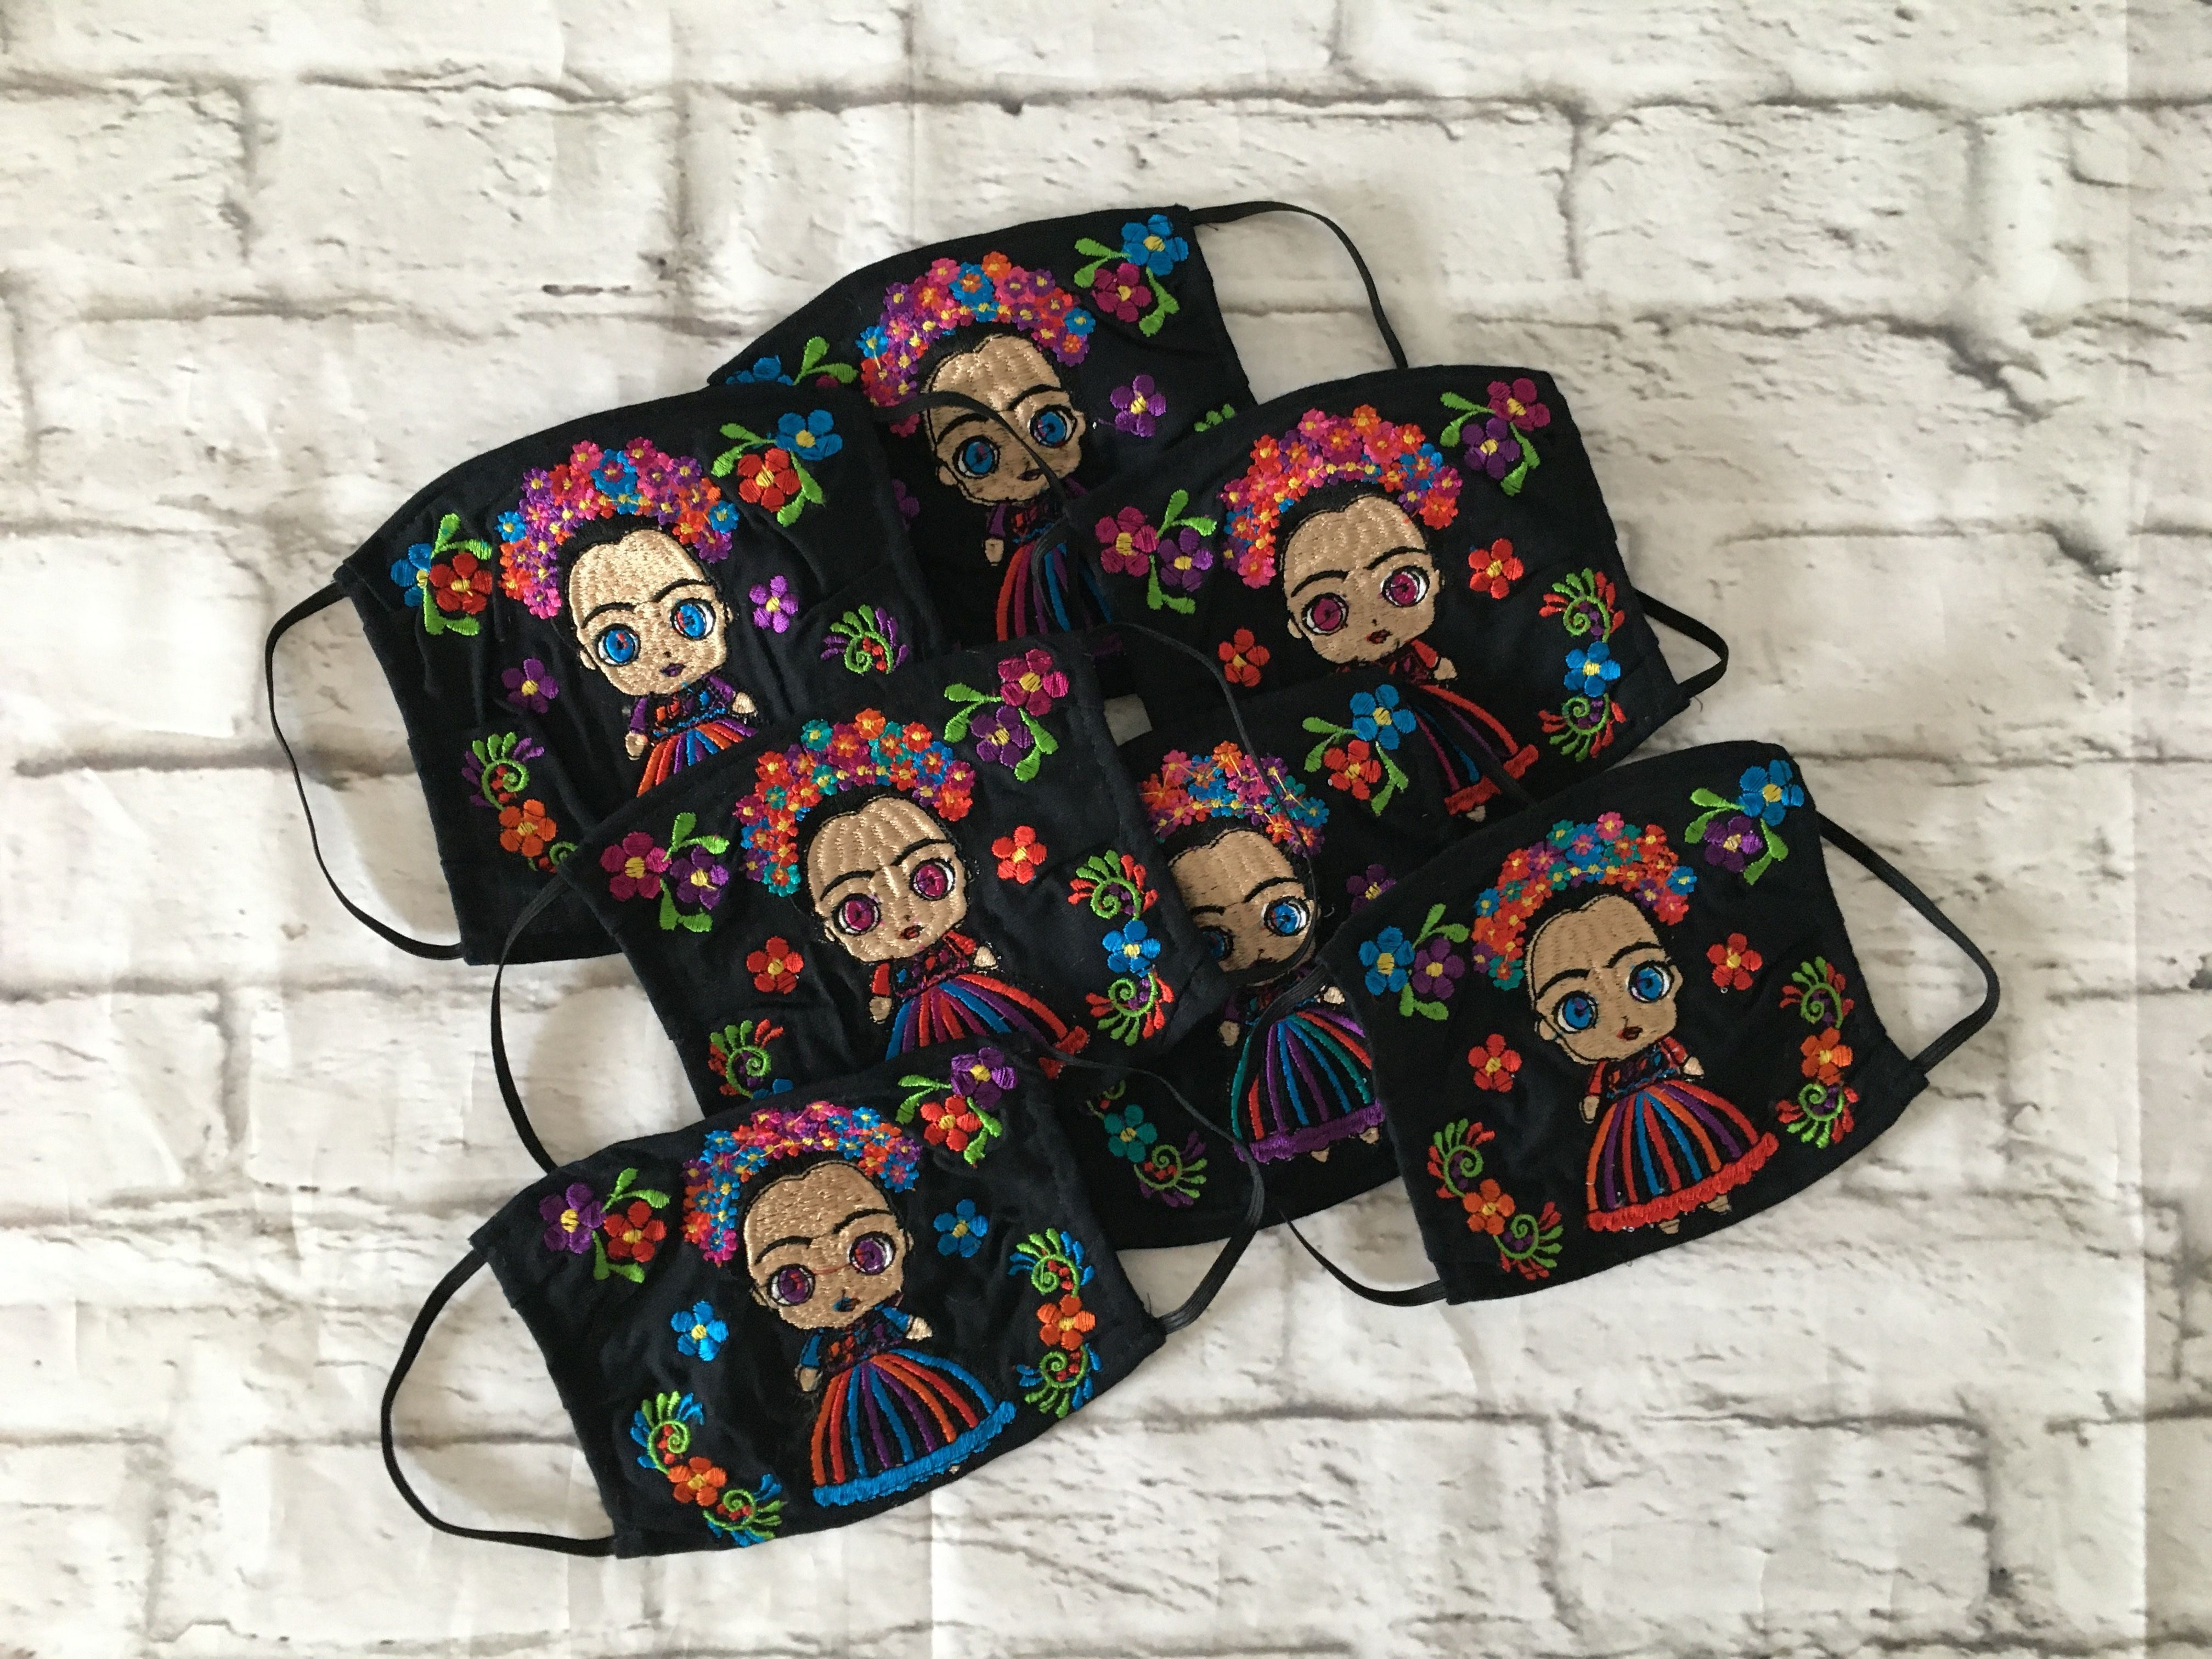 Mexican Embroidered Fabric Face Masks 😷Handmade in Chiapas, Mexico 🇲🇽   #handmadefacemask #handmademask #mexicanmask #embroideredmask #topabocas #cubrebocas #cubrebocasdetela #artesaniasmexicanas #fabricmask #hechoamano #hechoenmexico #handmade #madeinmexico